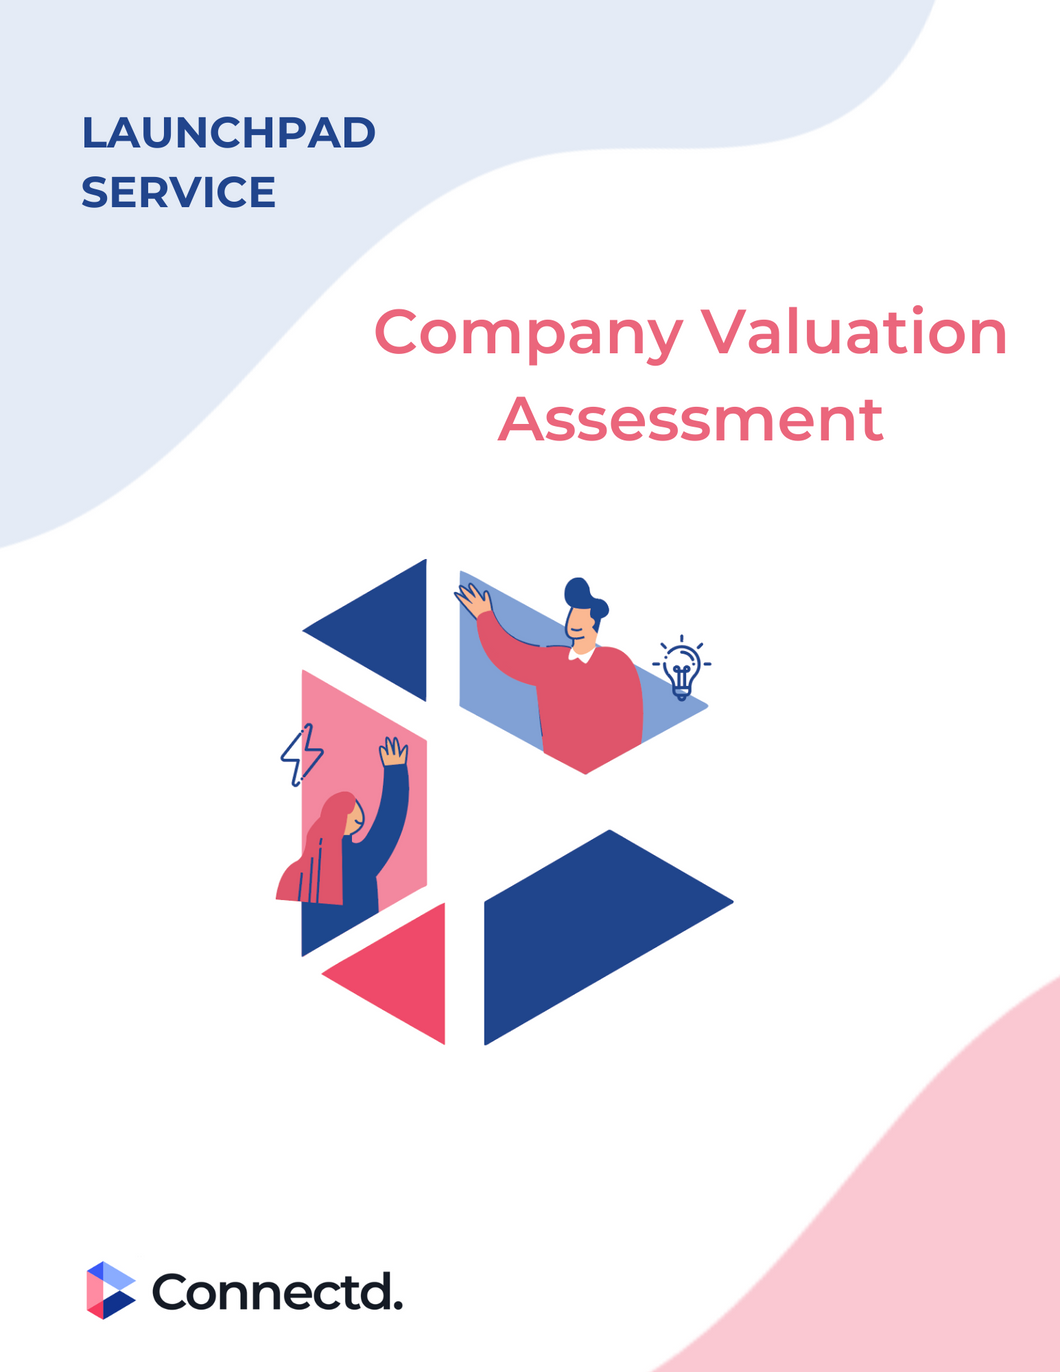 Company Valuation Assessment